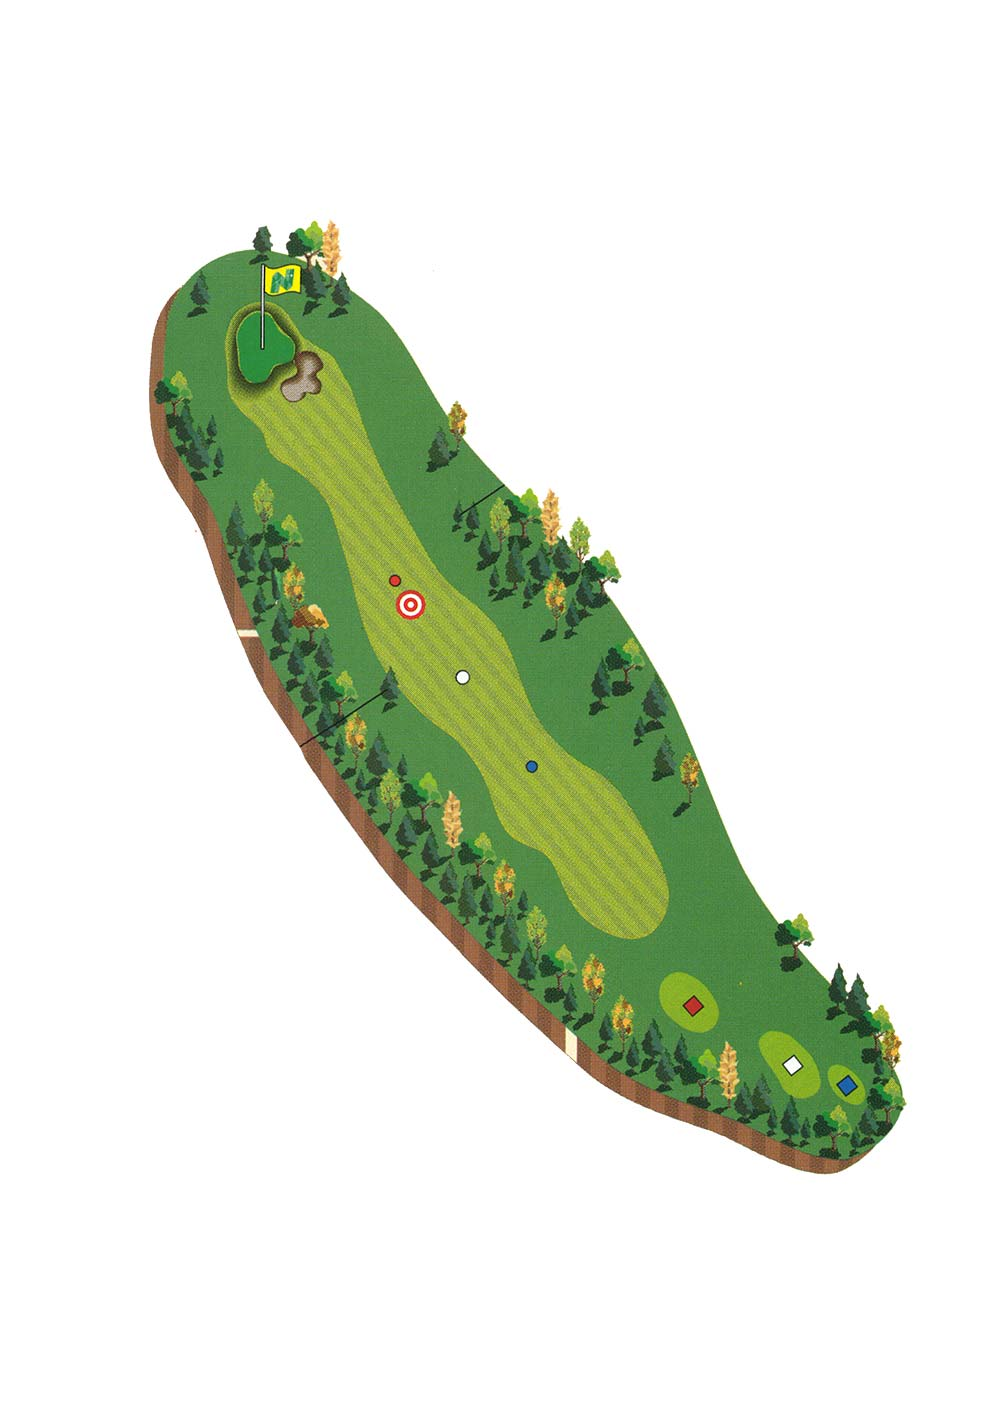 Course Description - Hole 9